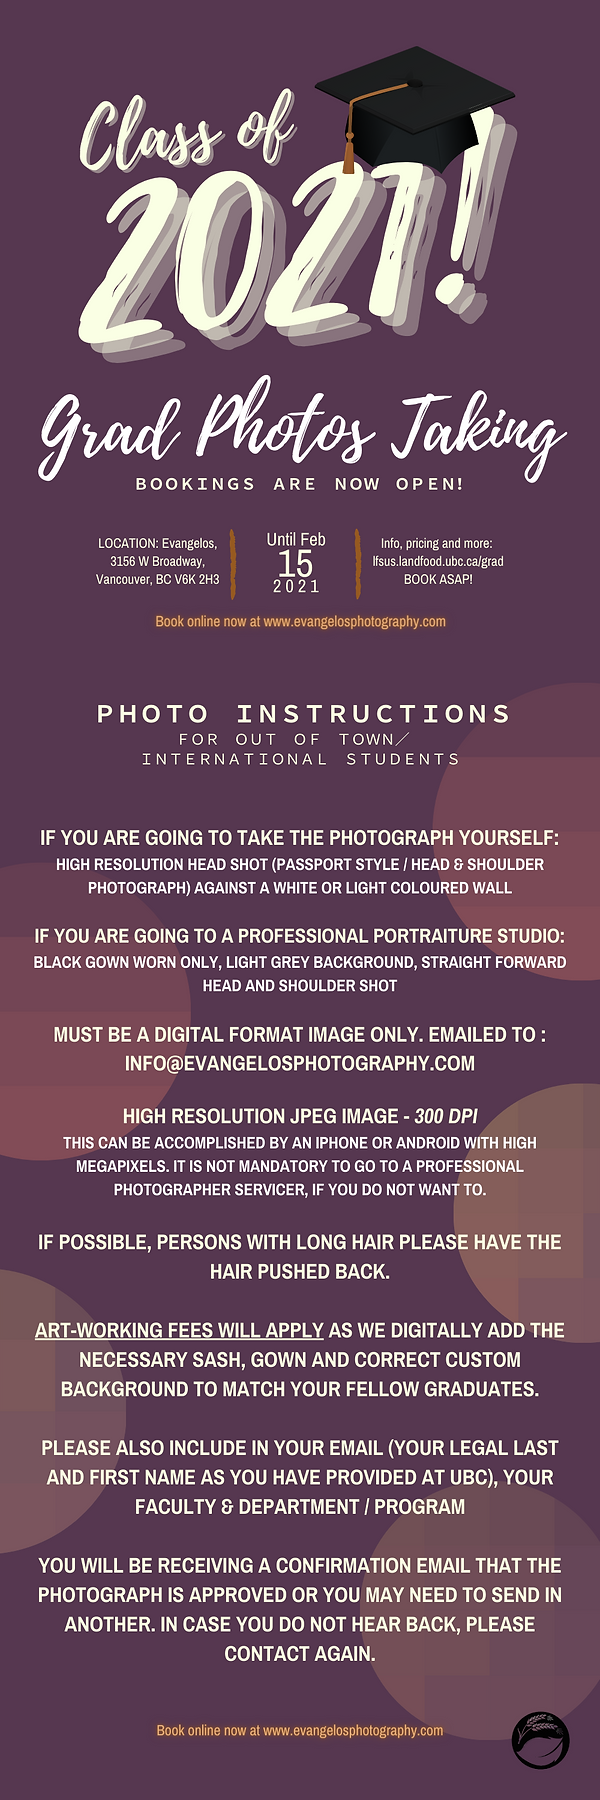 If you are going to take the photograph